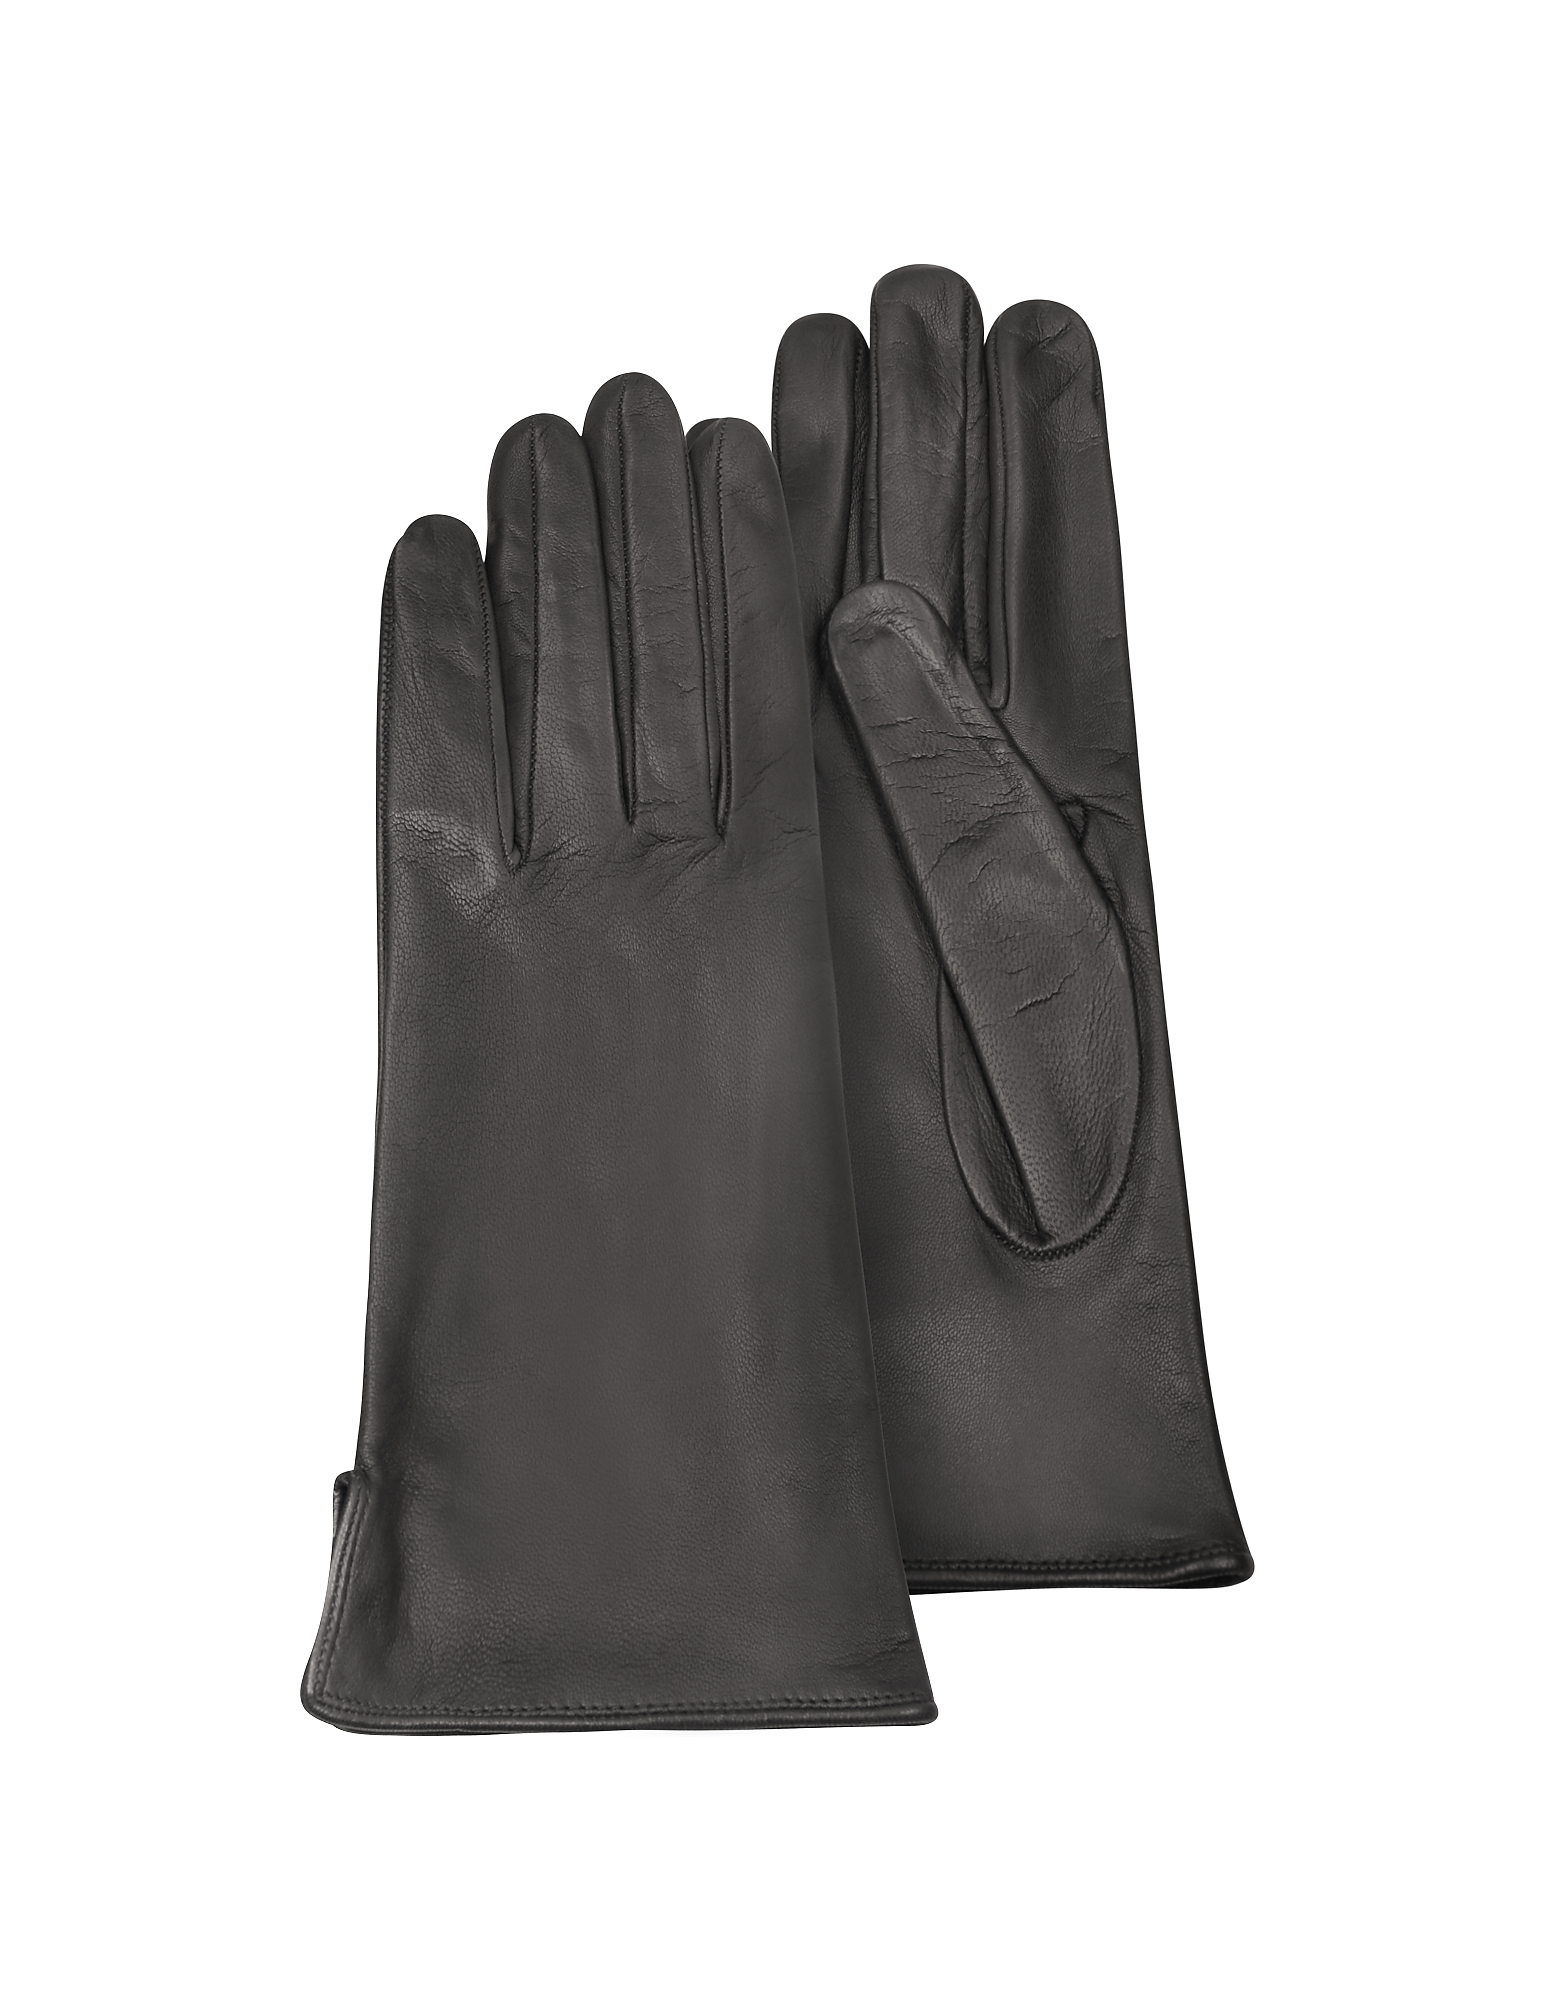 Forzieri Designer Women's Gloves, Women's Black Calf Leather Gloves w/ Silk Lining